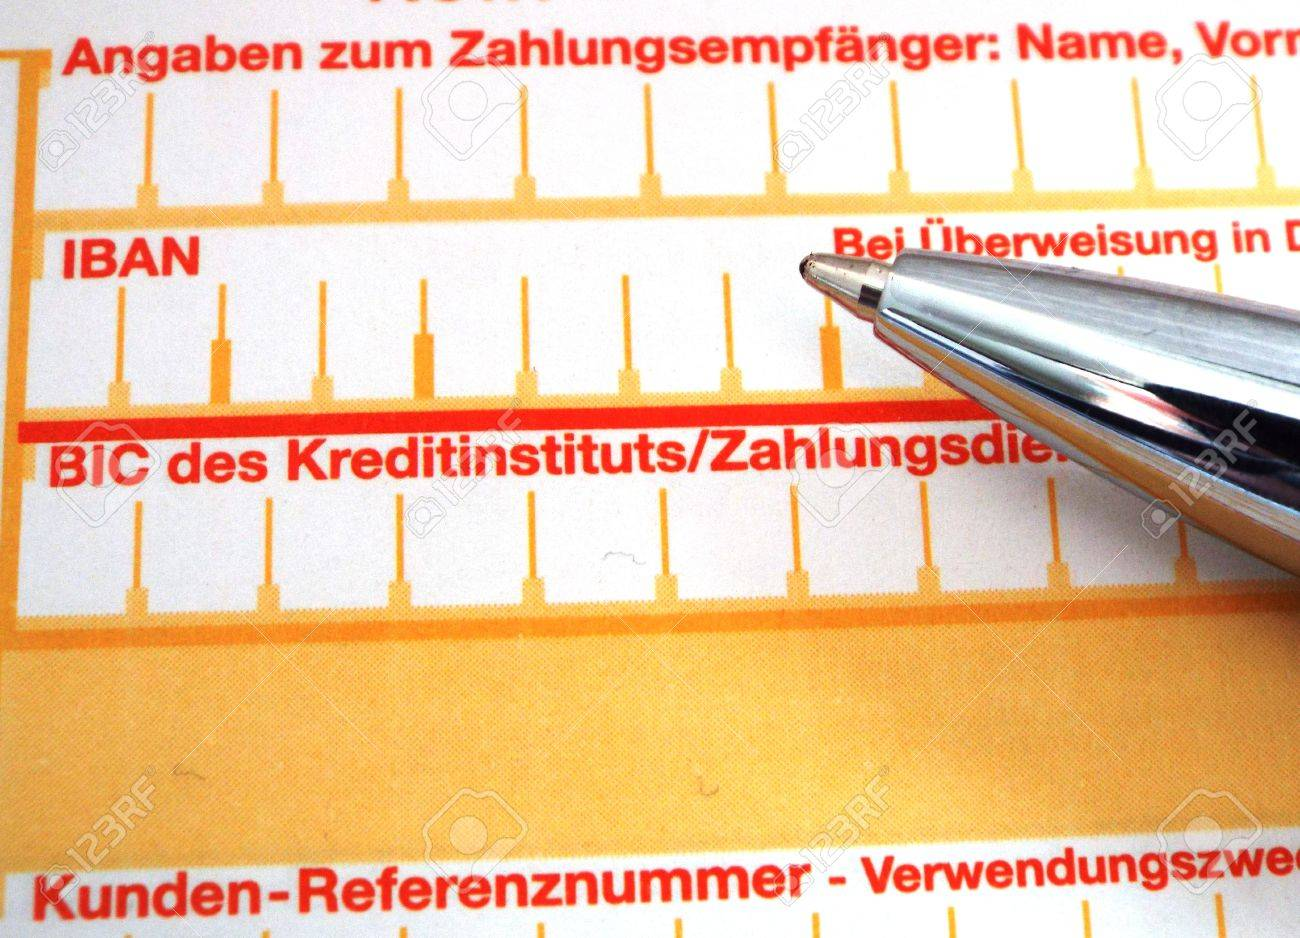 IBAN - Close-up of the IBAN and BIC fields of a transaction form, along with the tip of a pen. - 38281172